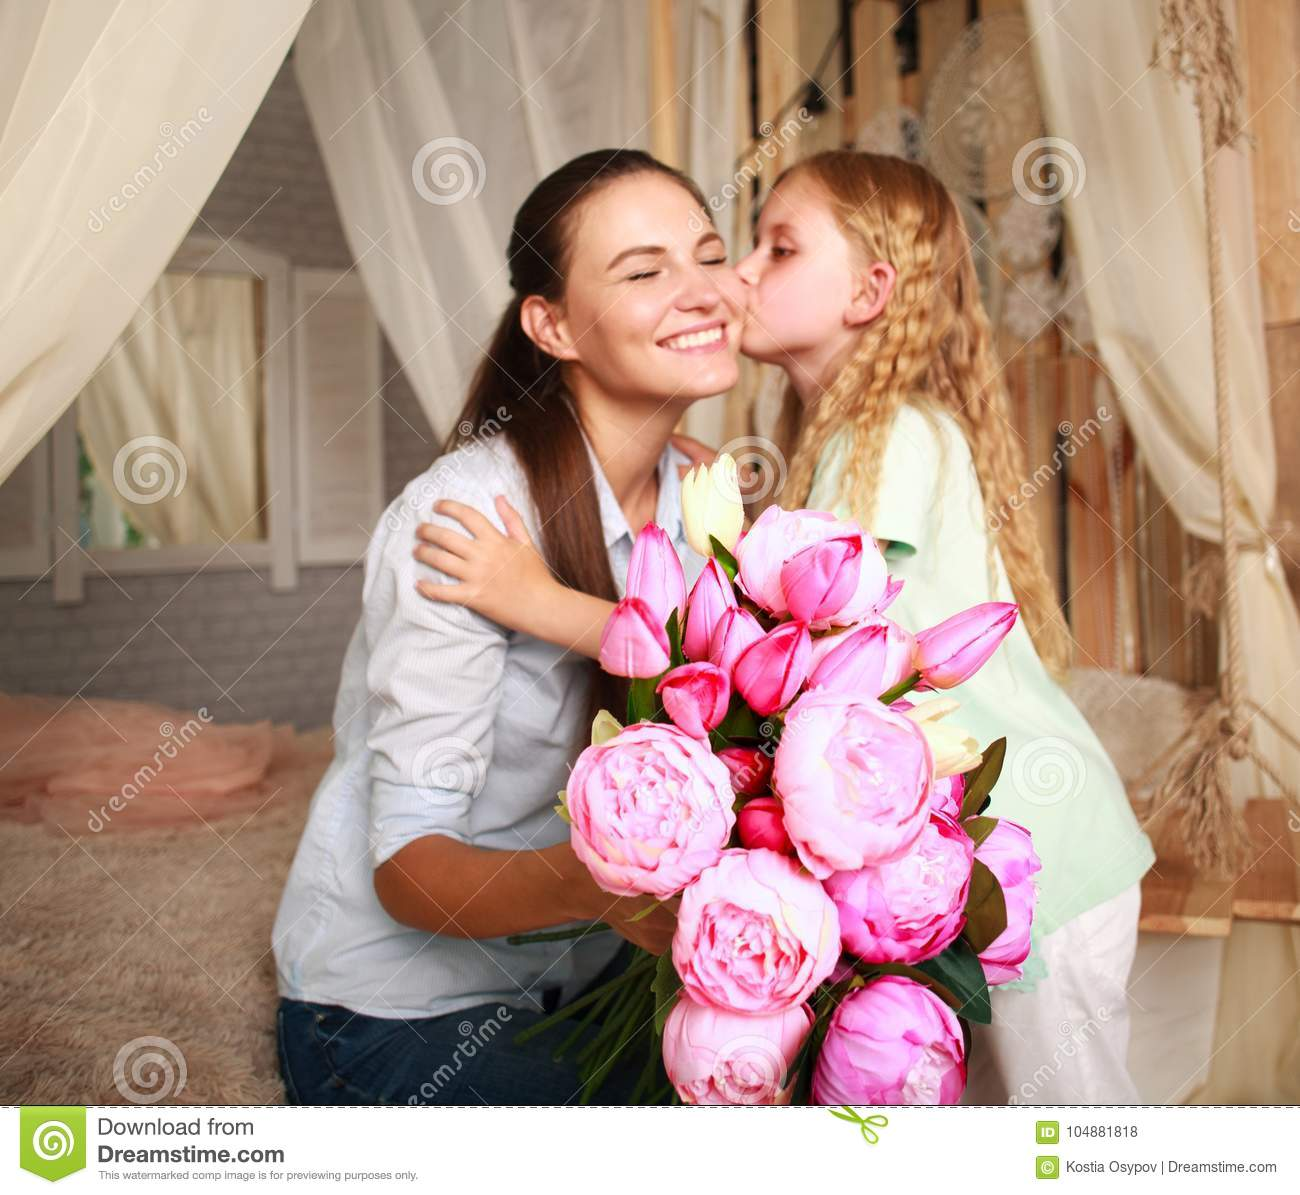 It's okay to give mother only flowers for your birthday 39